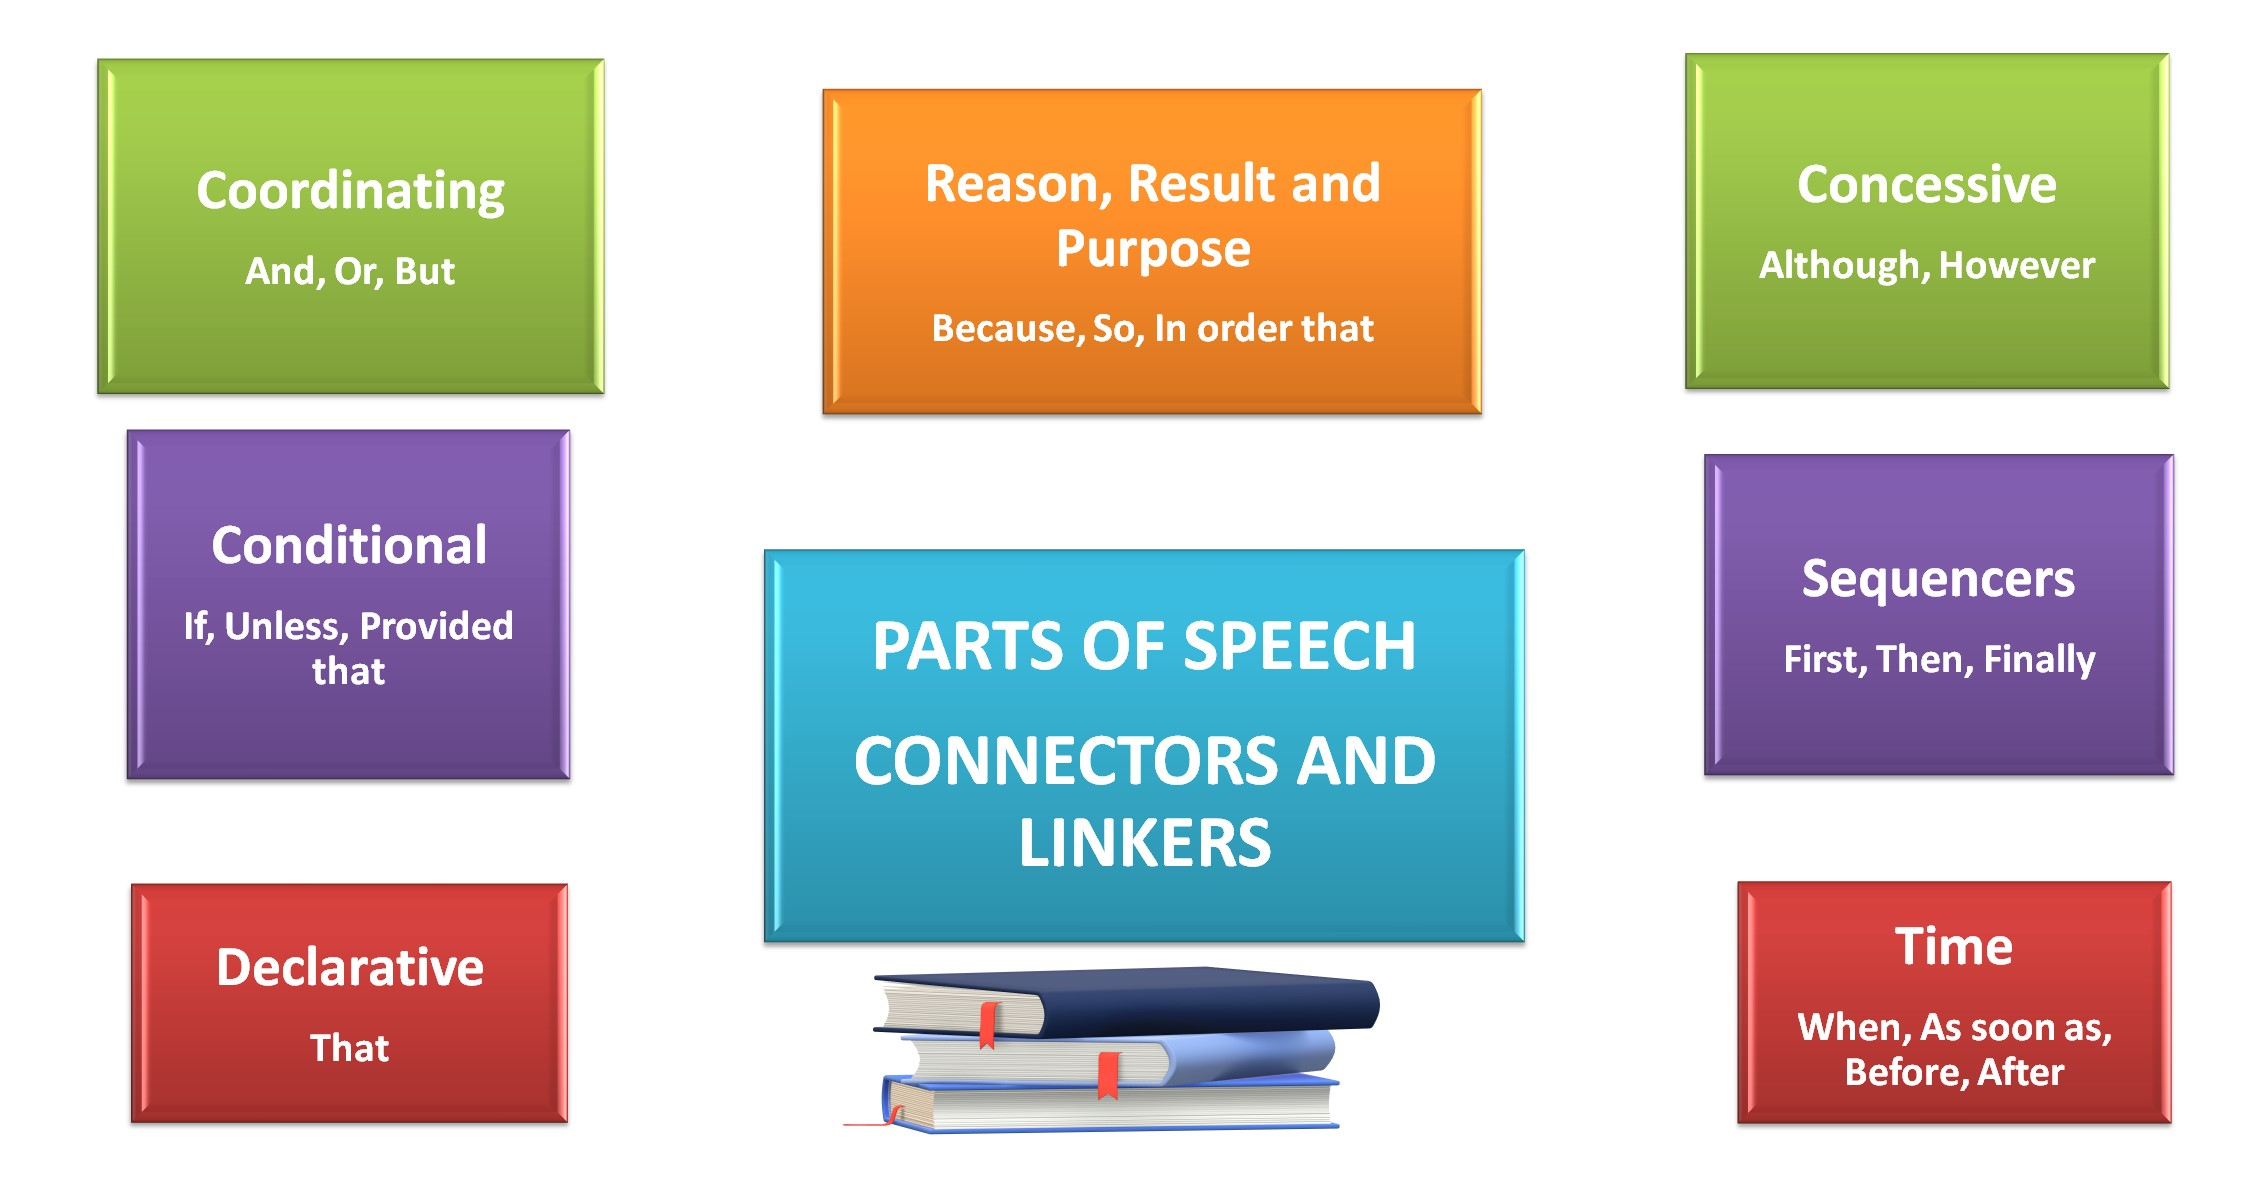 Parts of Speech - Connectors and Linkers